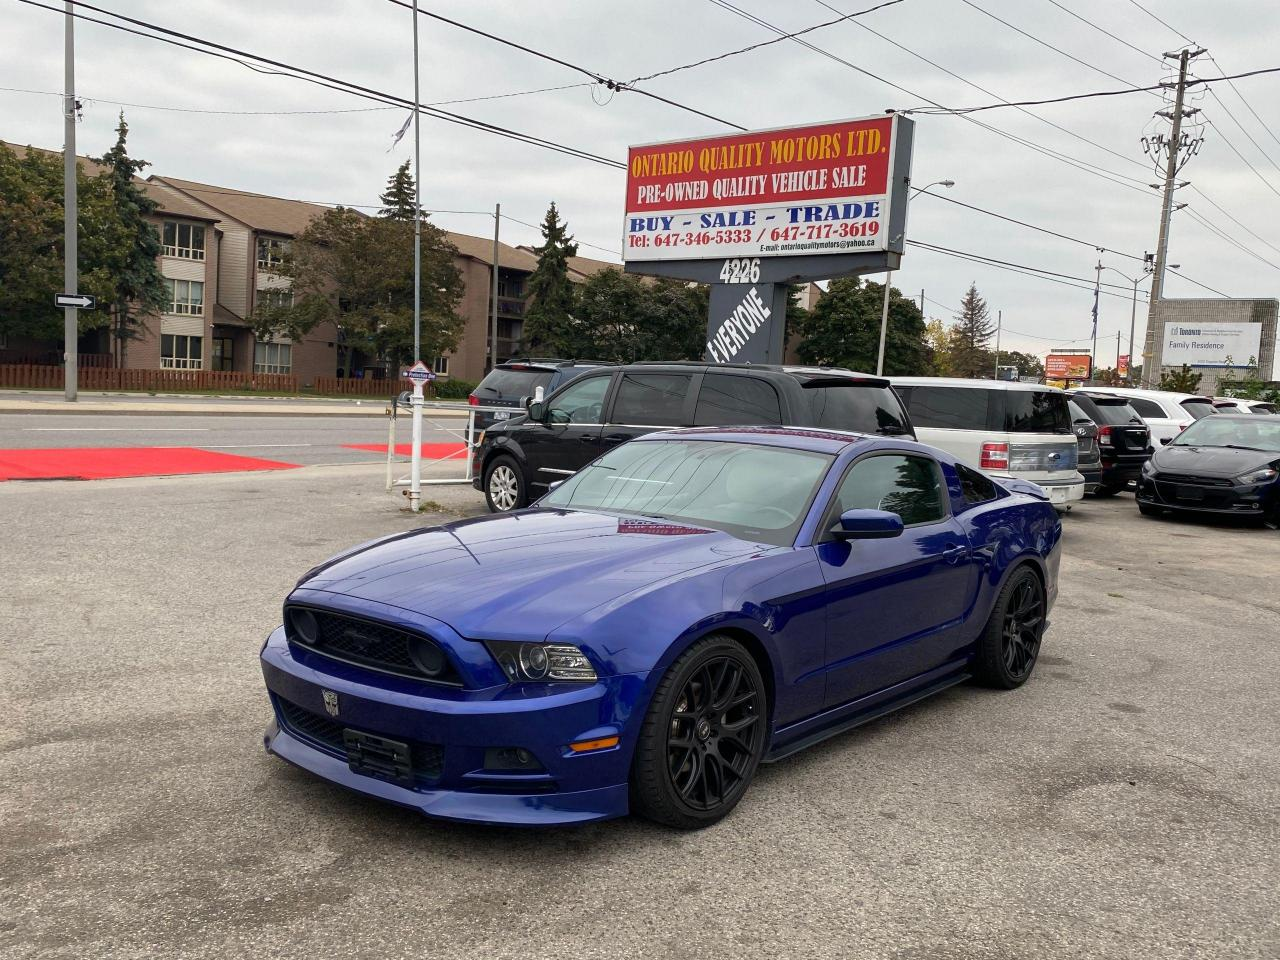 Ford Mustang Gt For Sale Toronto